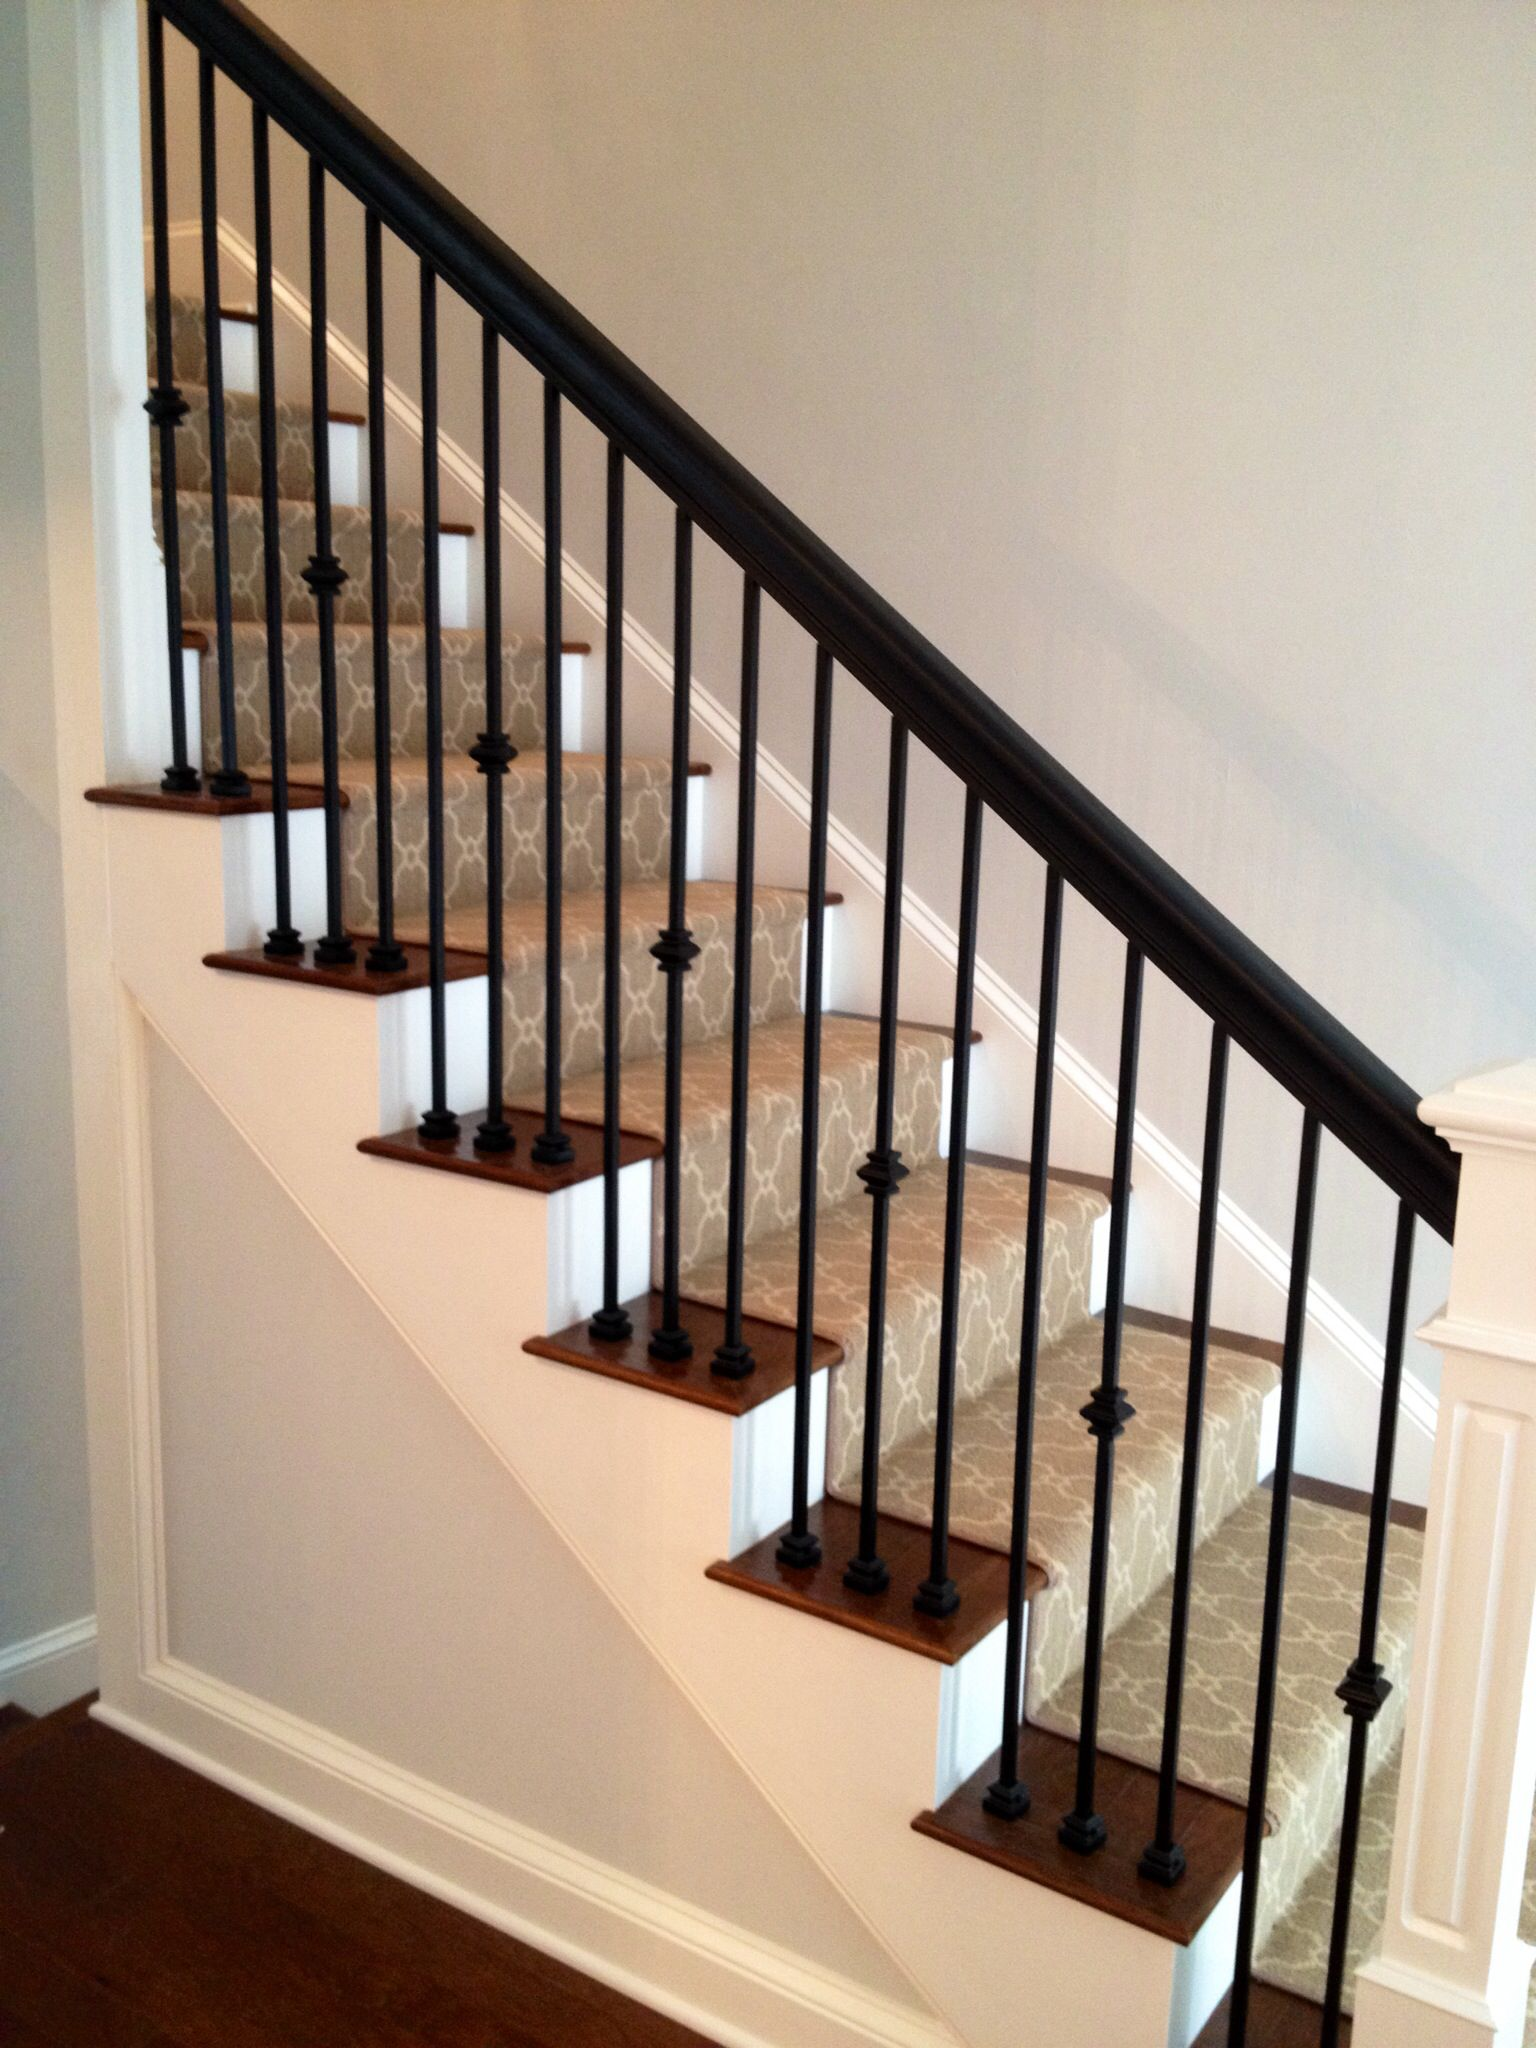 Staircase Iron Spindles Wood Handrail Wood Newel Post   Wood Railing With Metal Spindles   Brazilian Cherry Stair   Newel Post   Stained   Traditional   Metal Stair